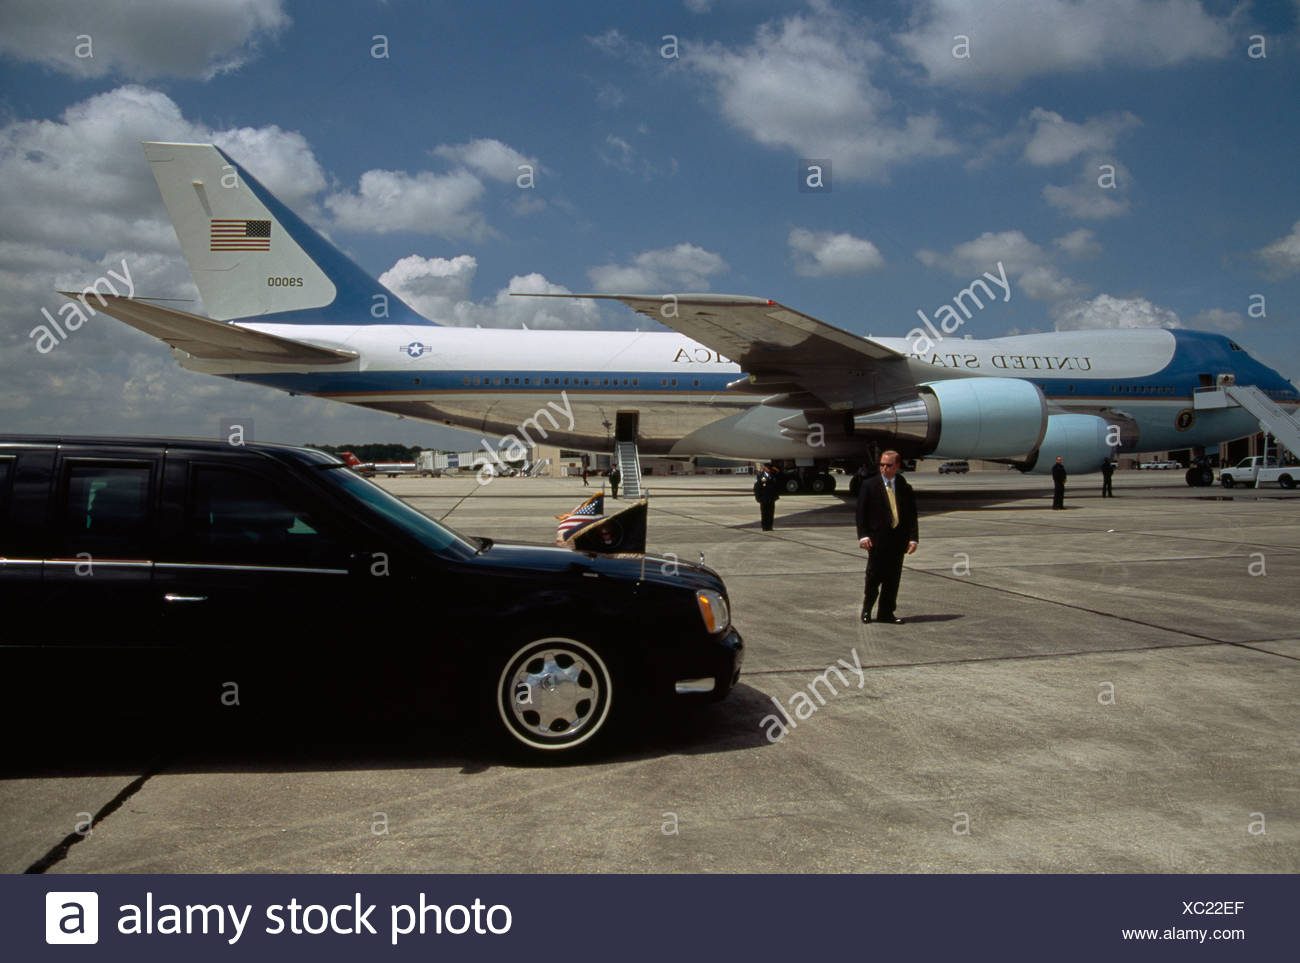 Air Force One awaits arrival of President Bush in his limousine. - Stock Image